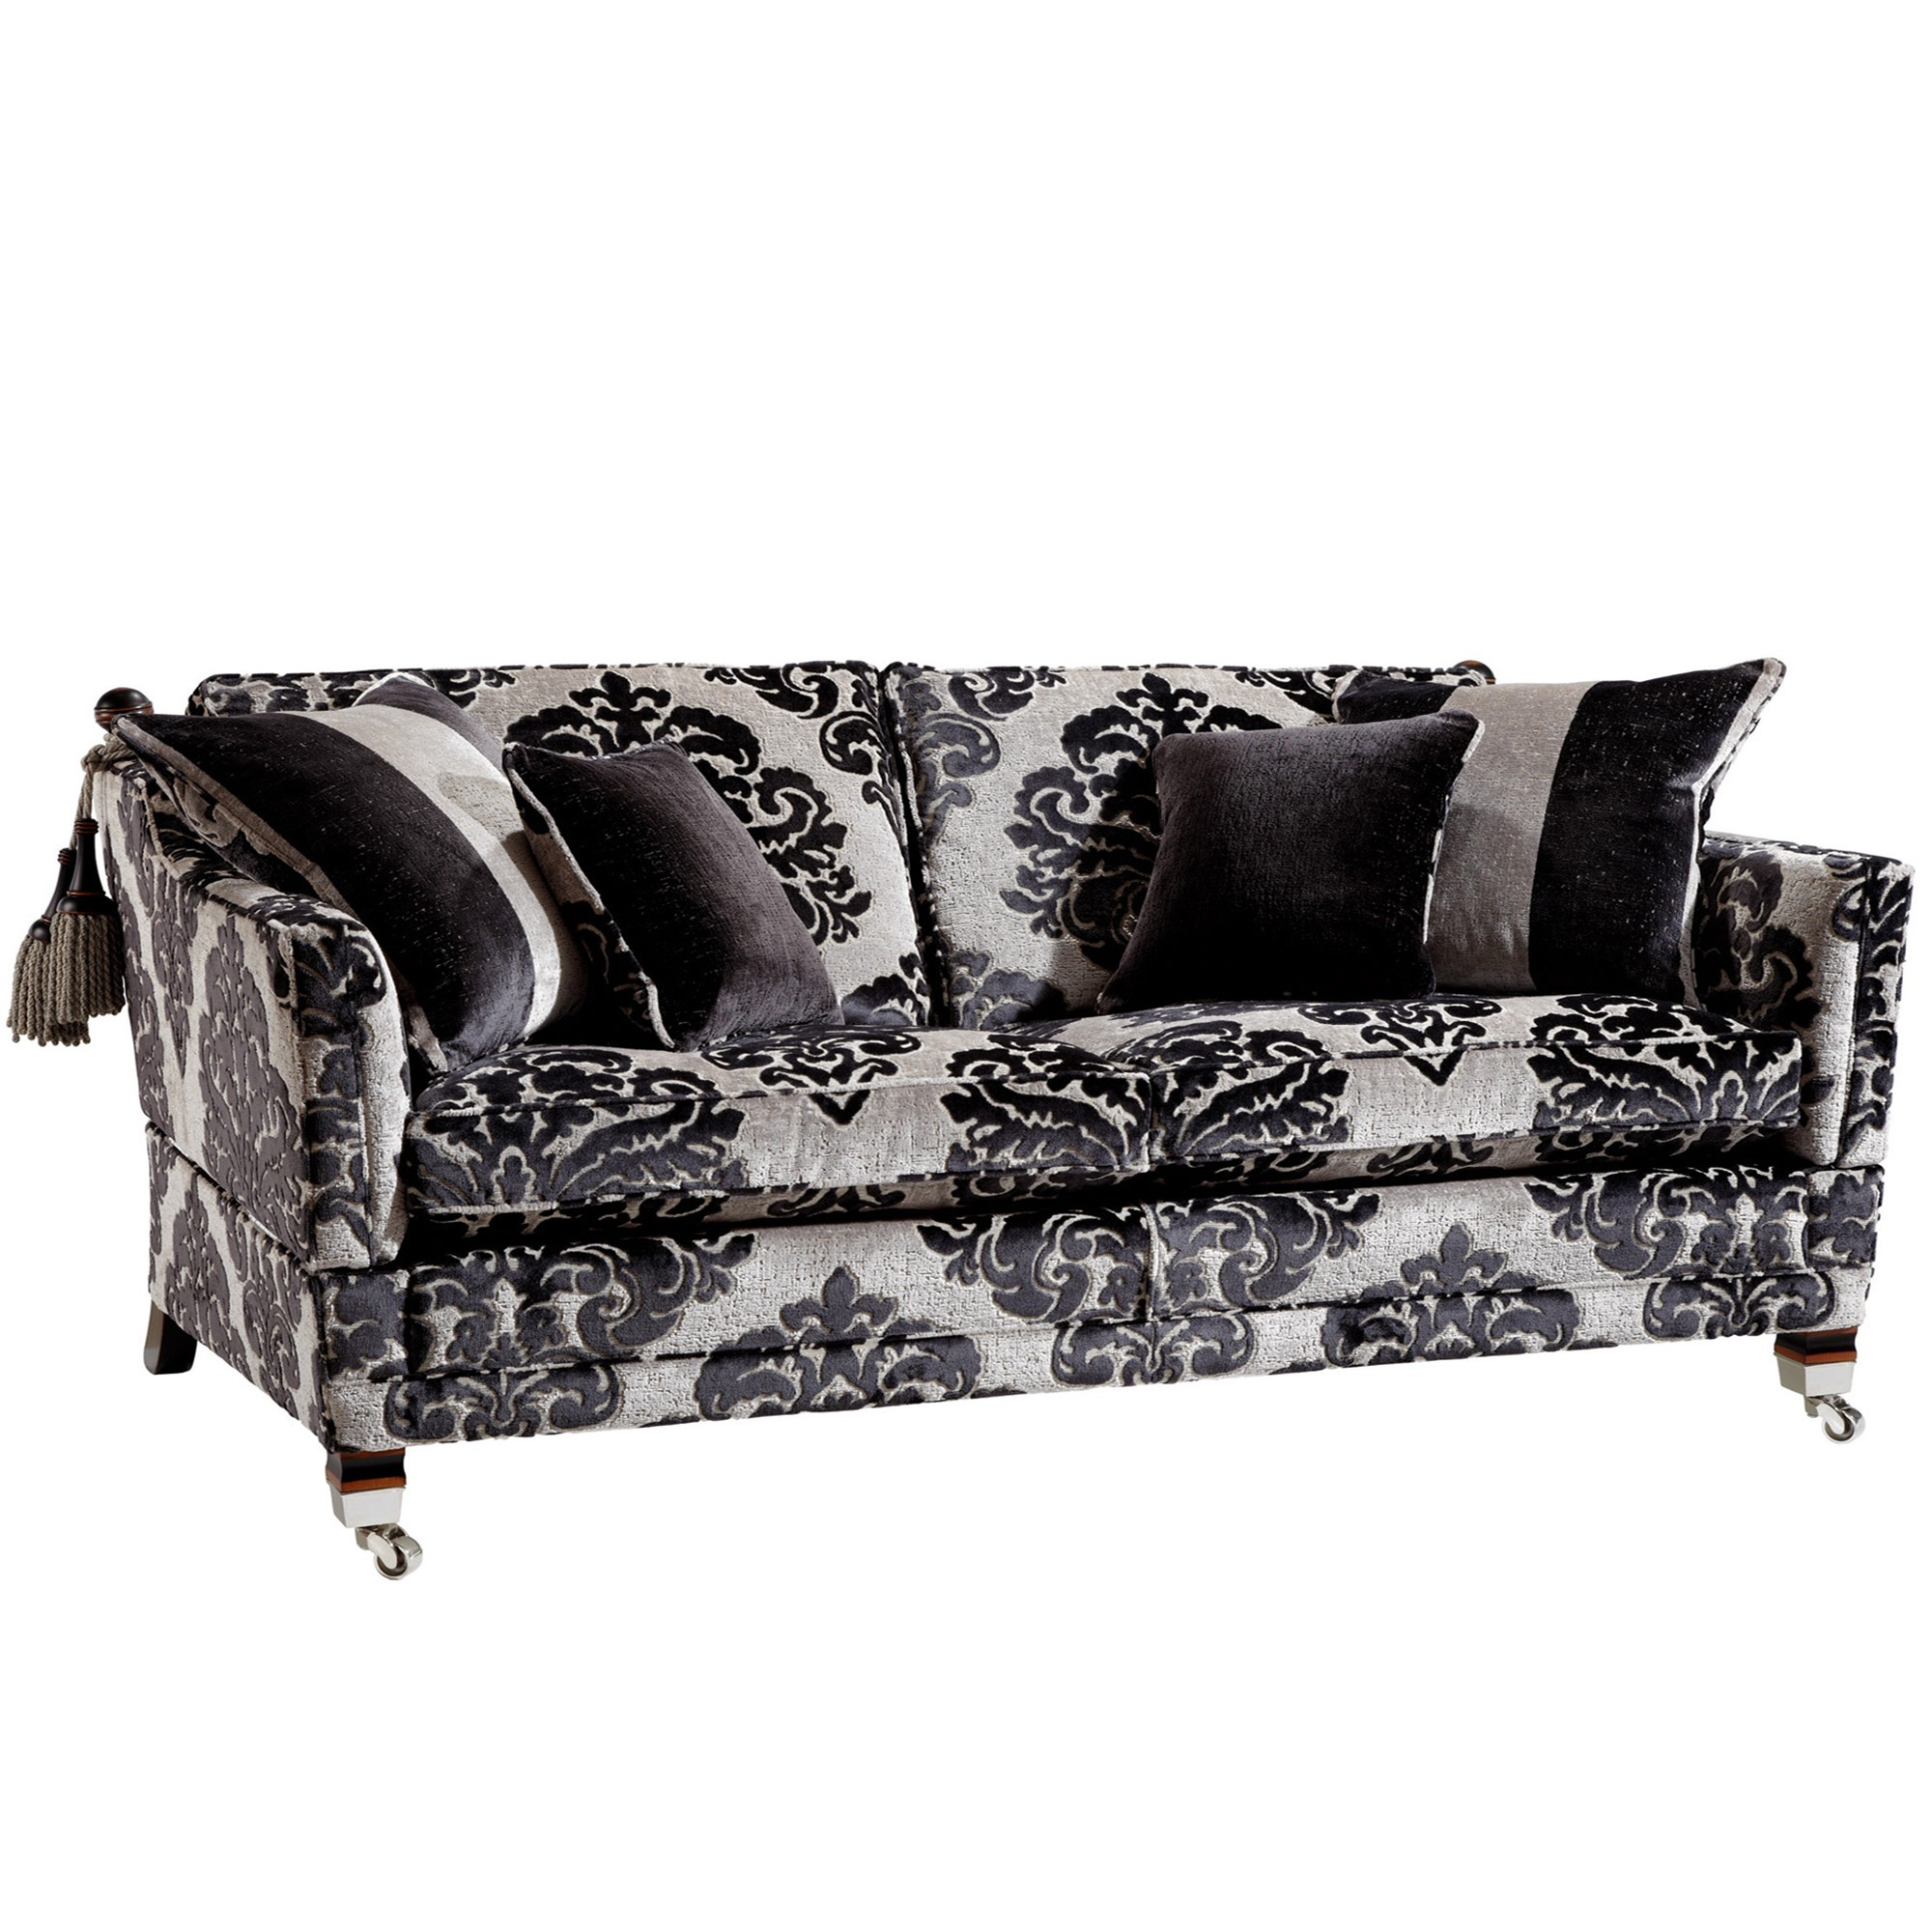 Duresta Trafalgar 3 Seater Cushion Back Sofa